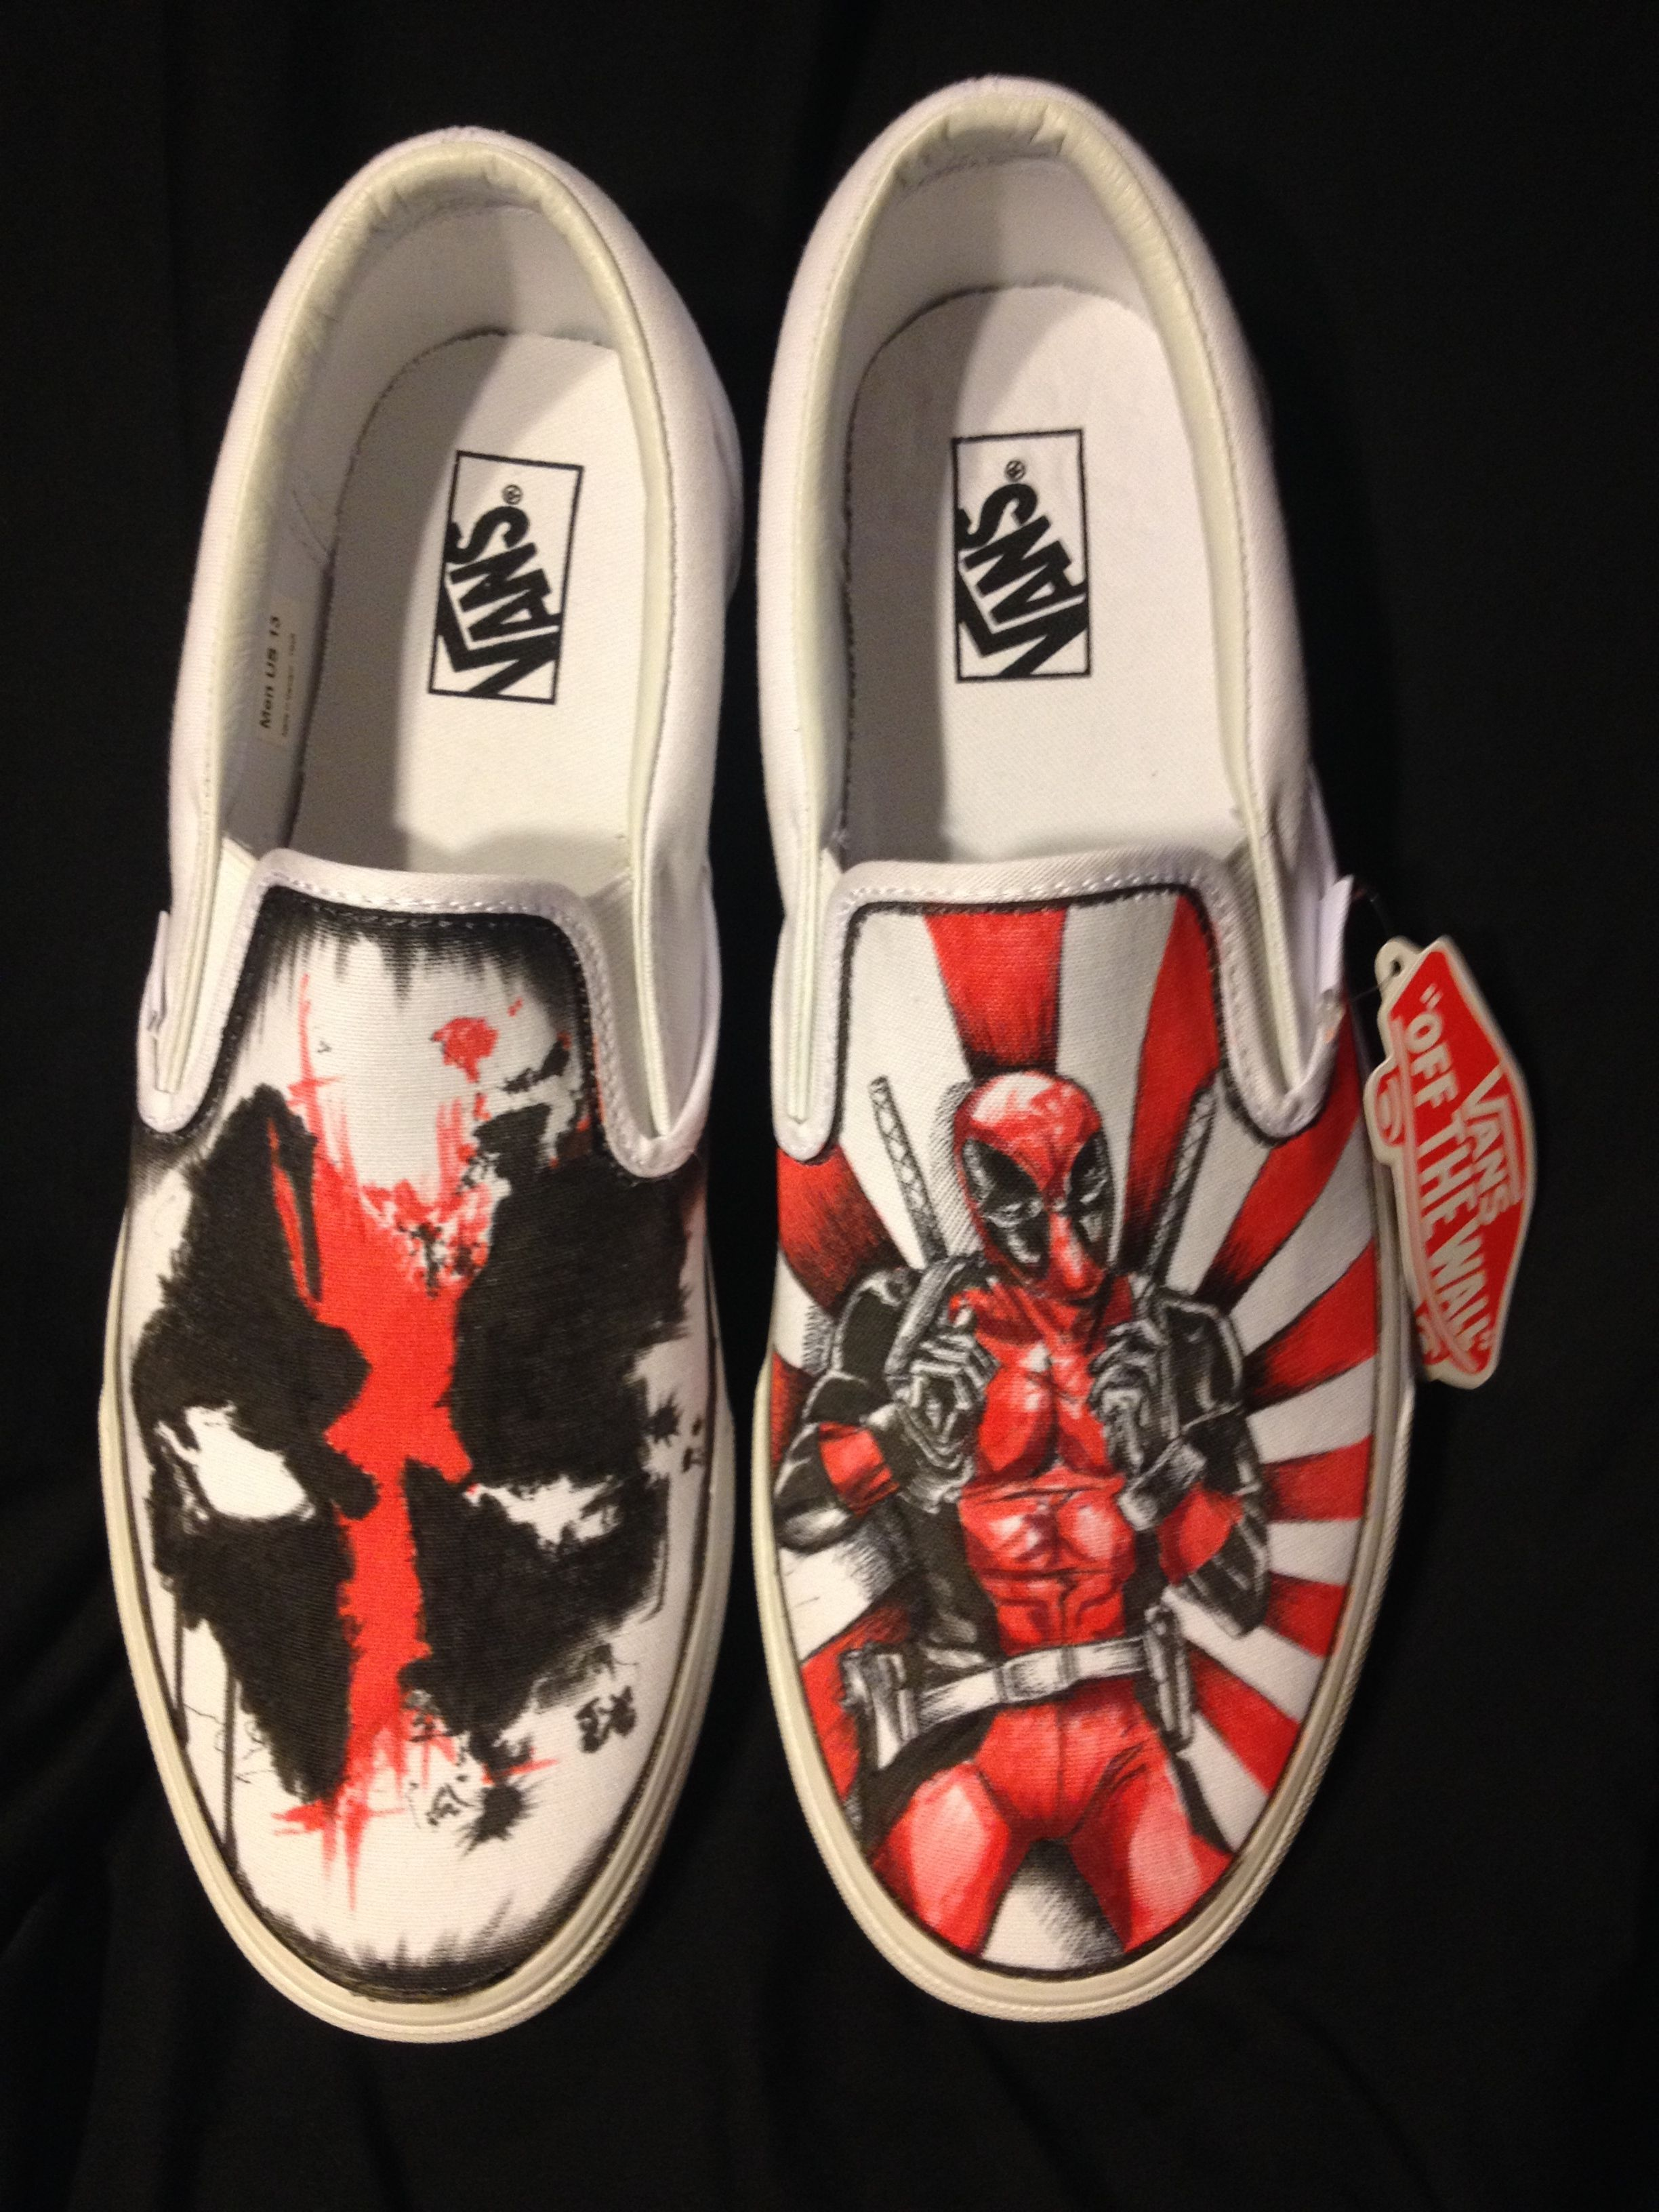 Drawn shoe custom drawn From Custom Drawn Deadpool order